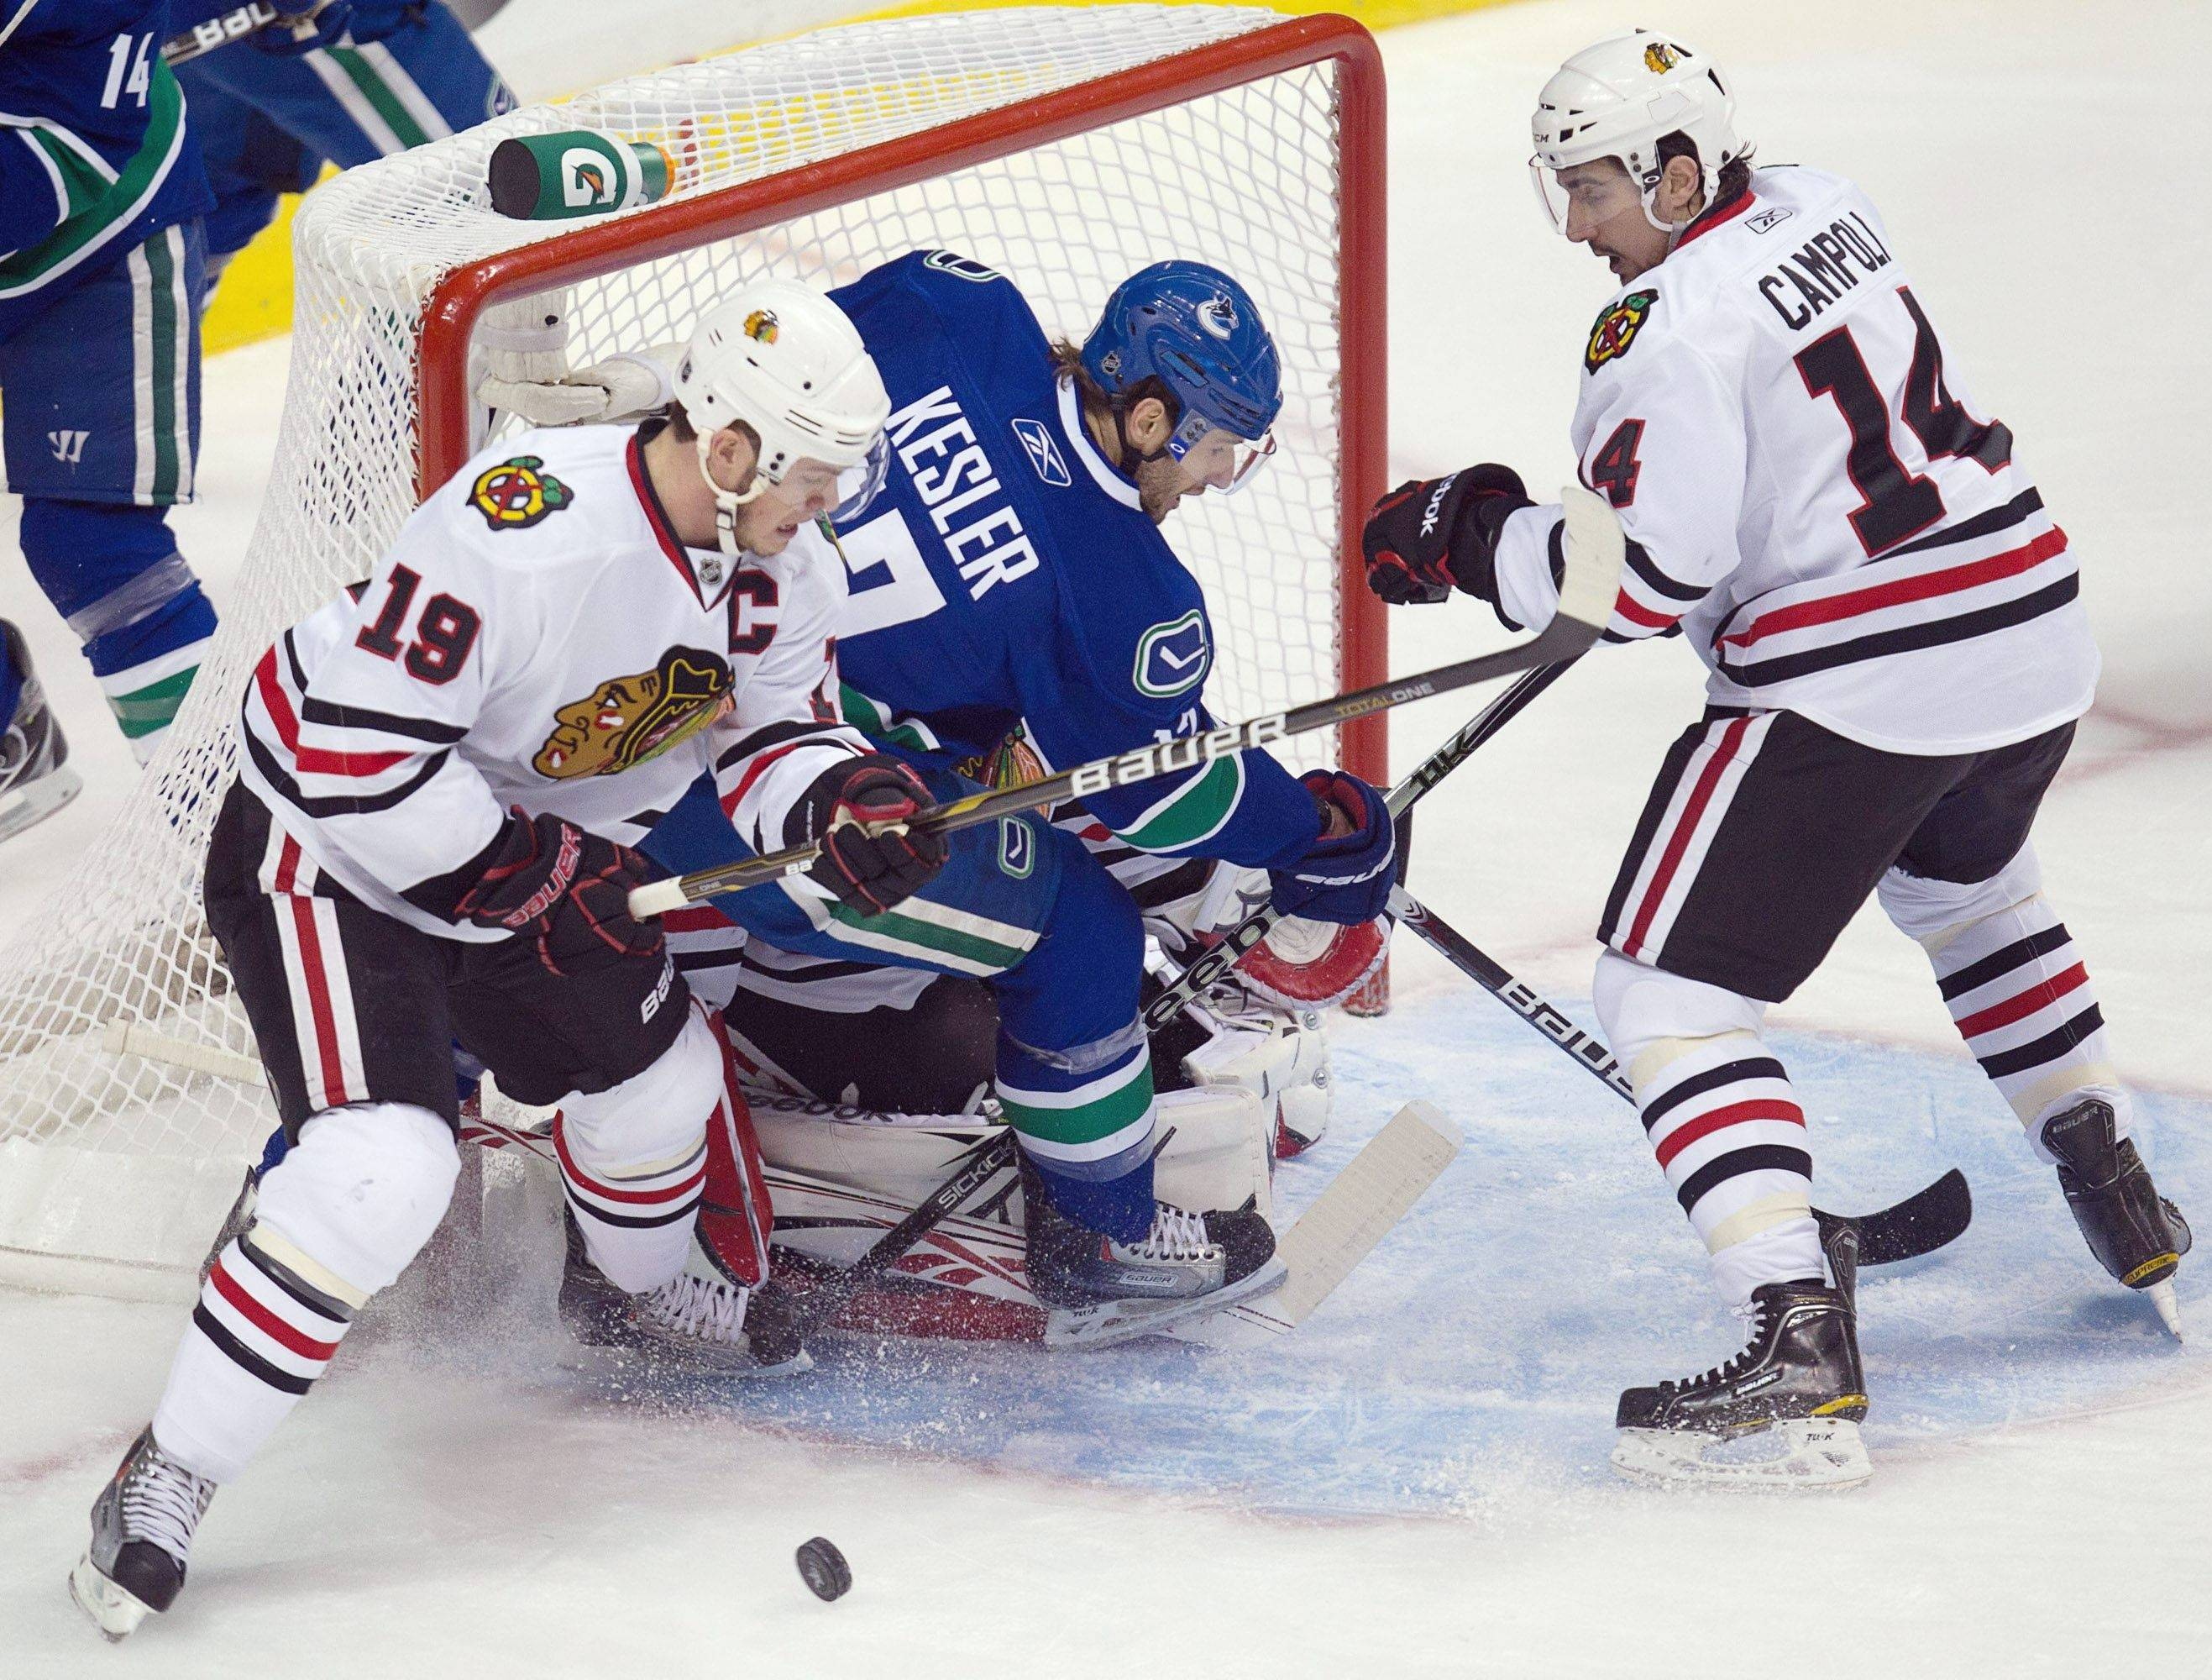 Vancouver Canucks' Ryan Kesler is stopped by Chicago Blackhawks goalie Corey Crawford as Jonathan Toews, left, and Chris Campoli defend during the first period Tuesday.